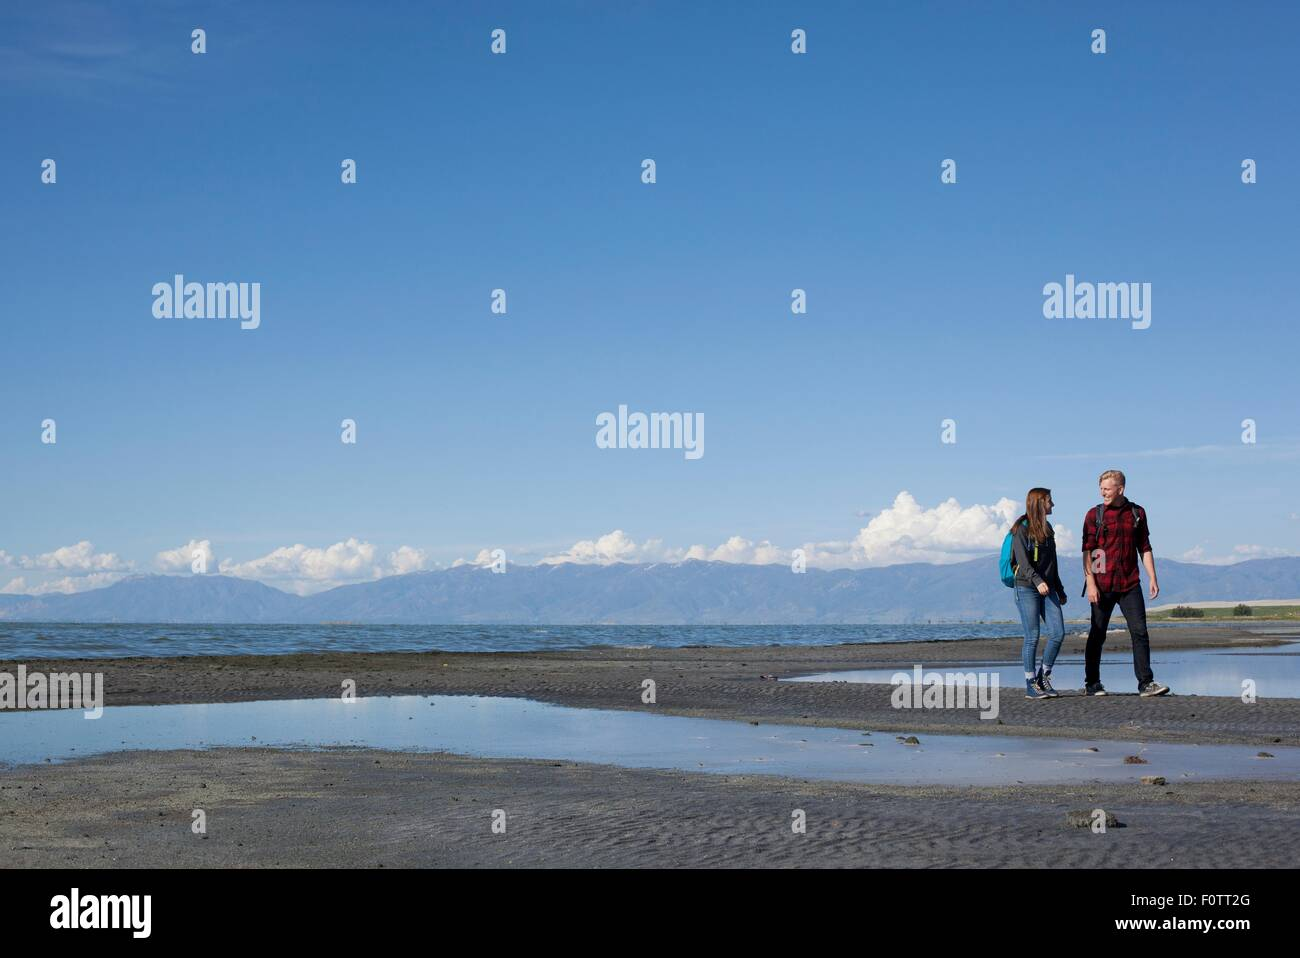 Young couple walking, looking at each other, Great Salt Lake, Utah, USA - Stock Image